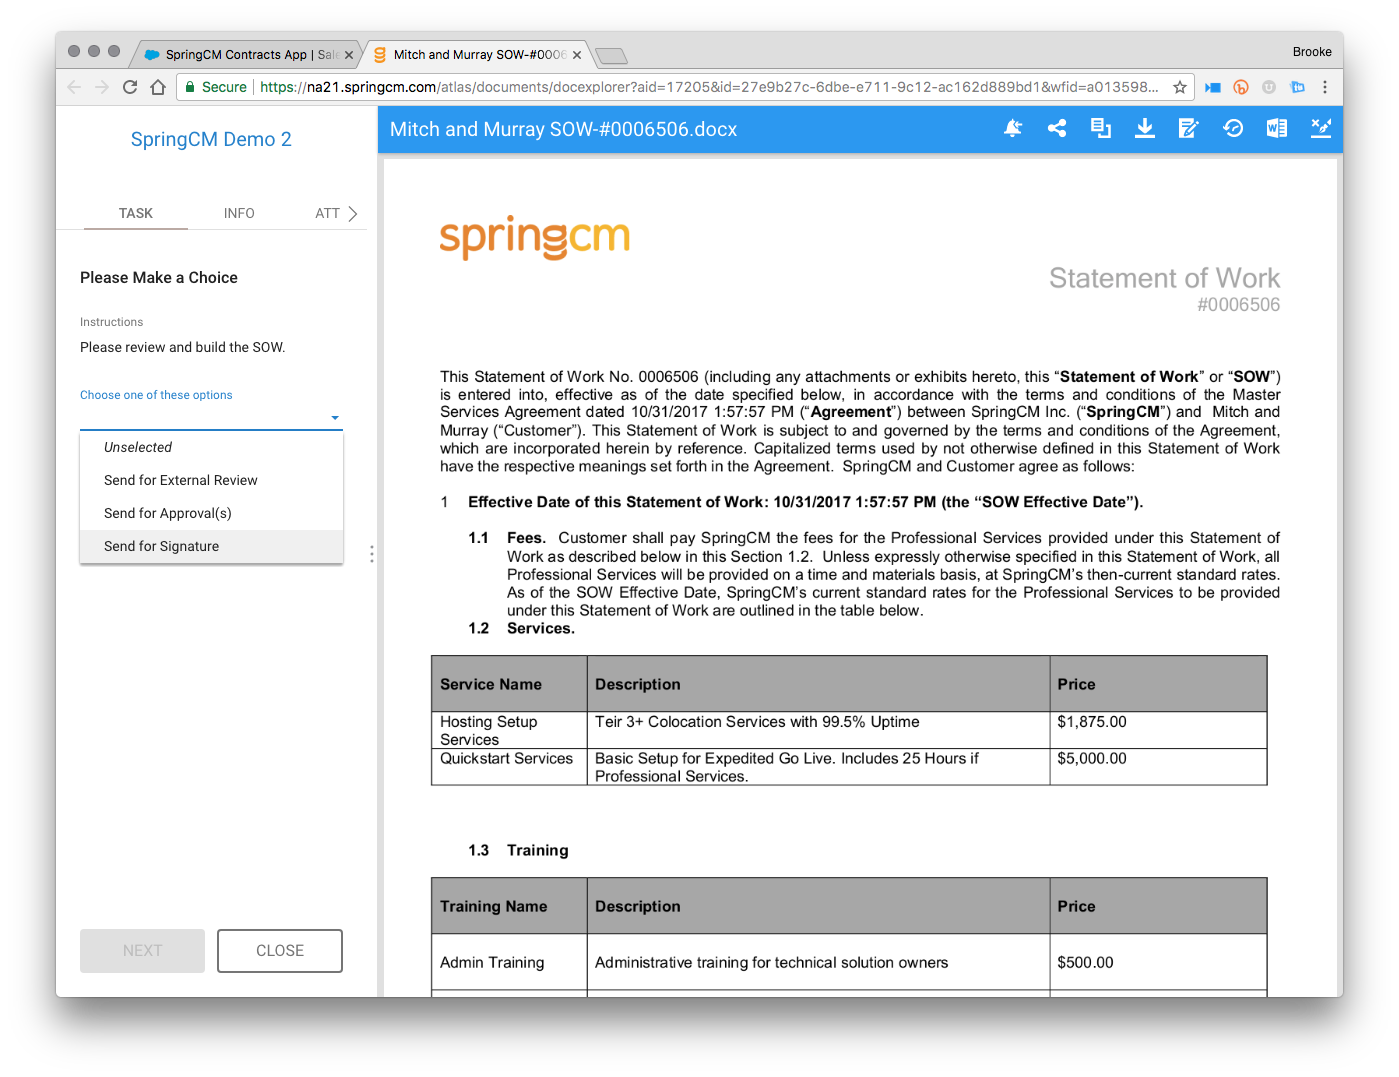 SpringCM Demo - Review and Approve before Sending